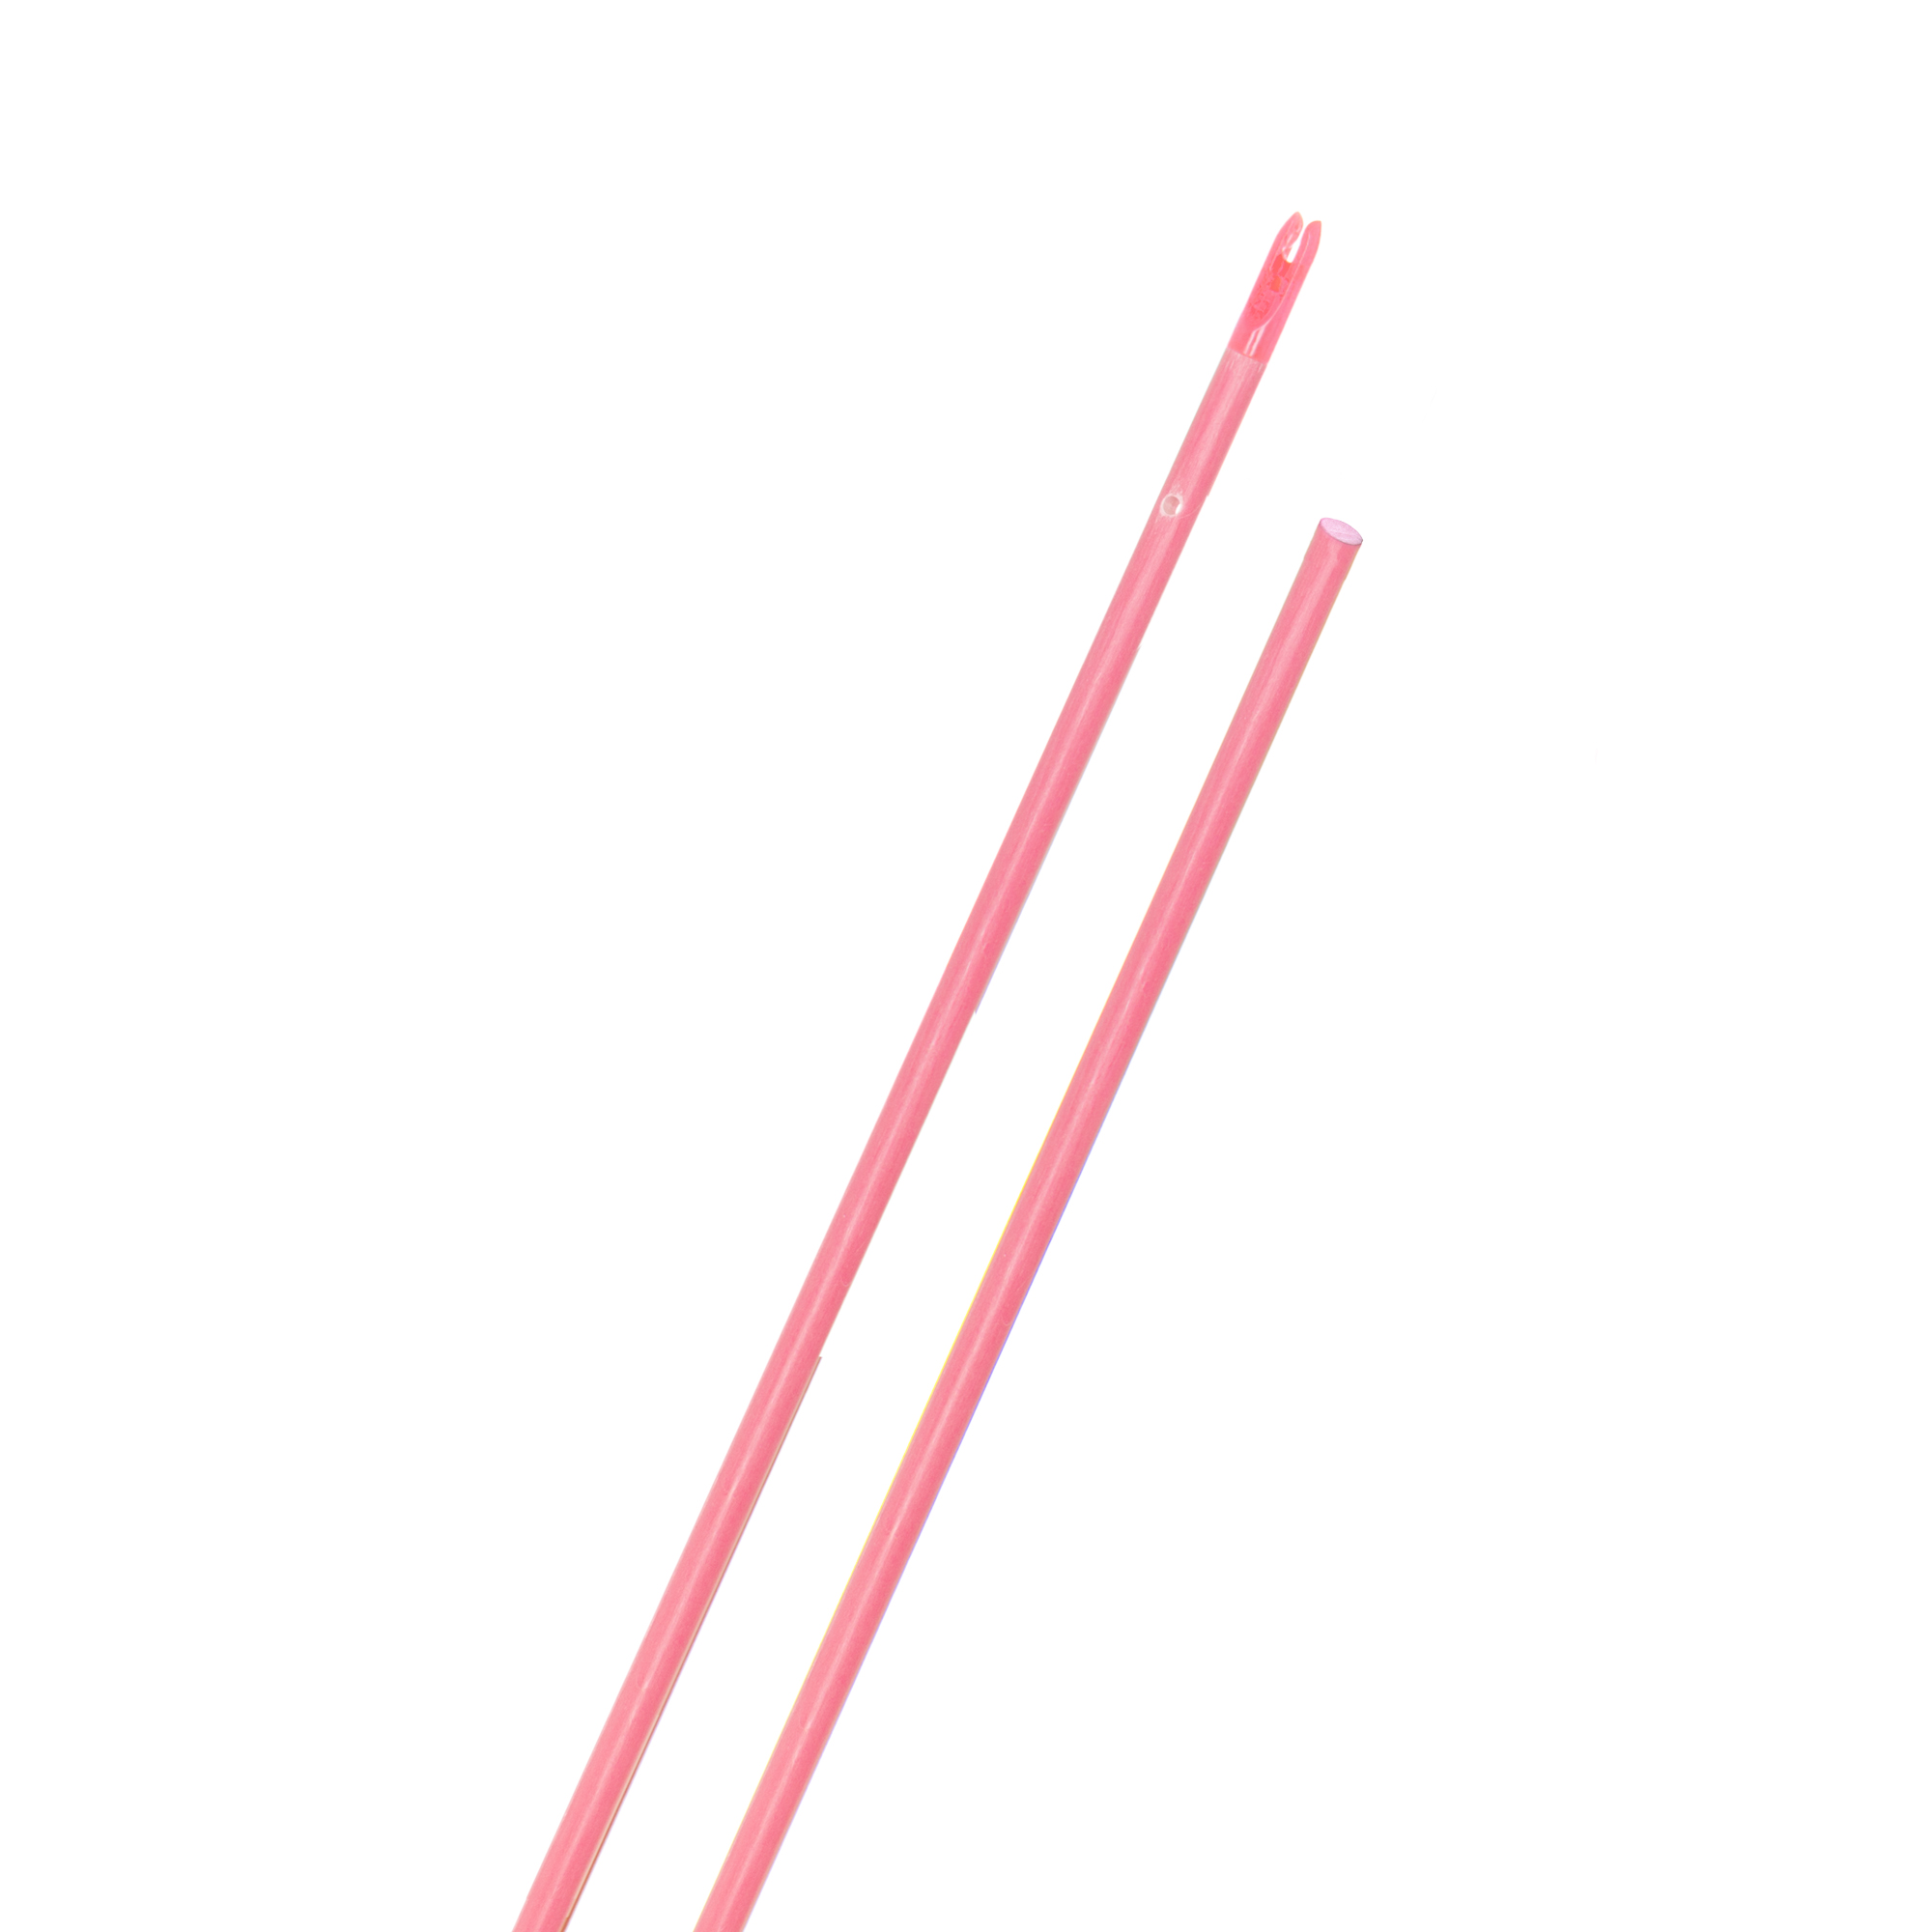 Raiderette Pink Arrow Shaft w/Nock